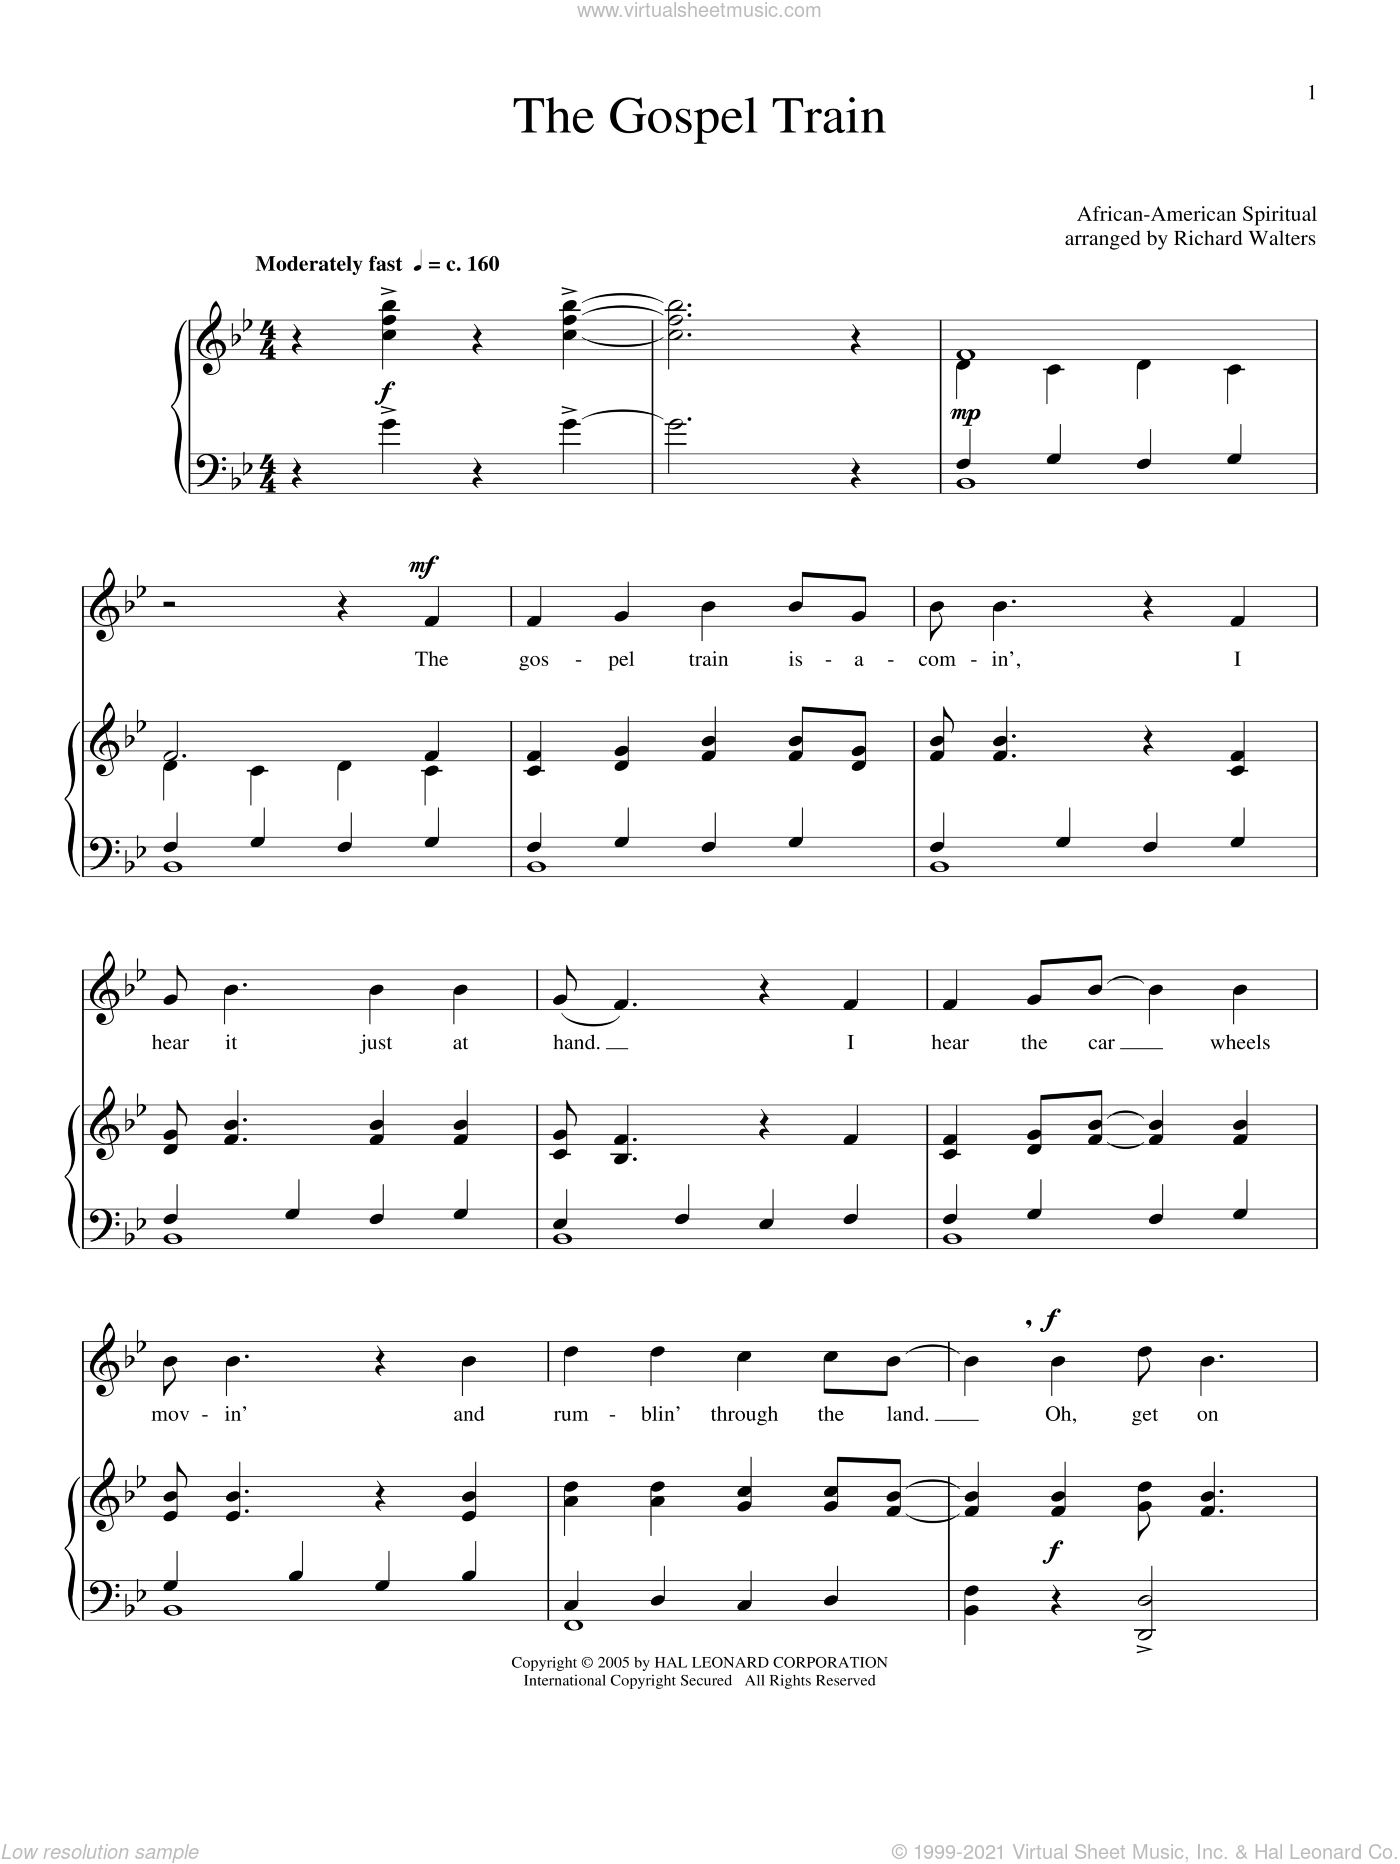 The Gospel Train sheet music for voice and piano, intermediate skill level